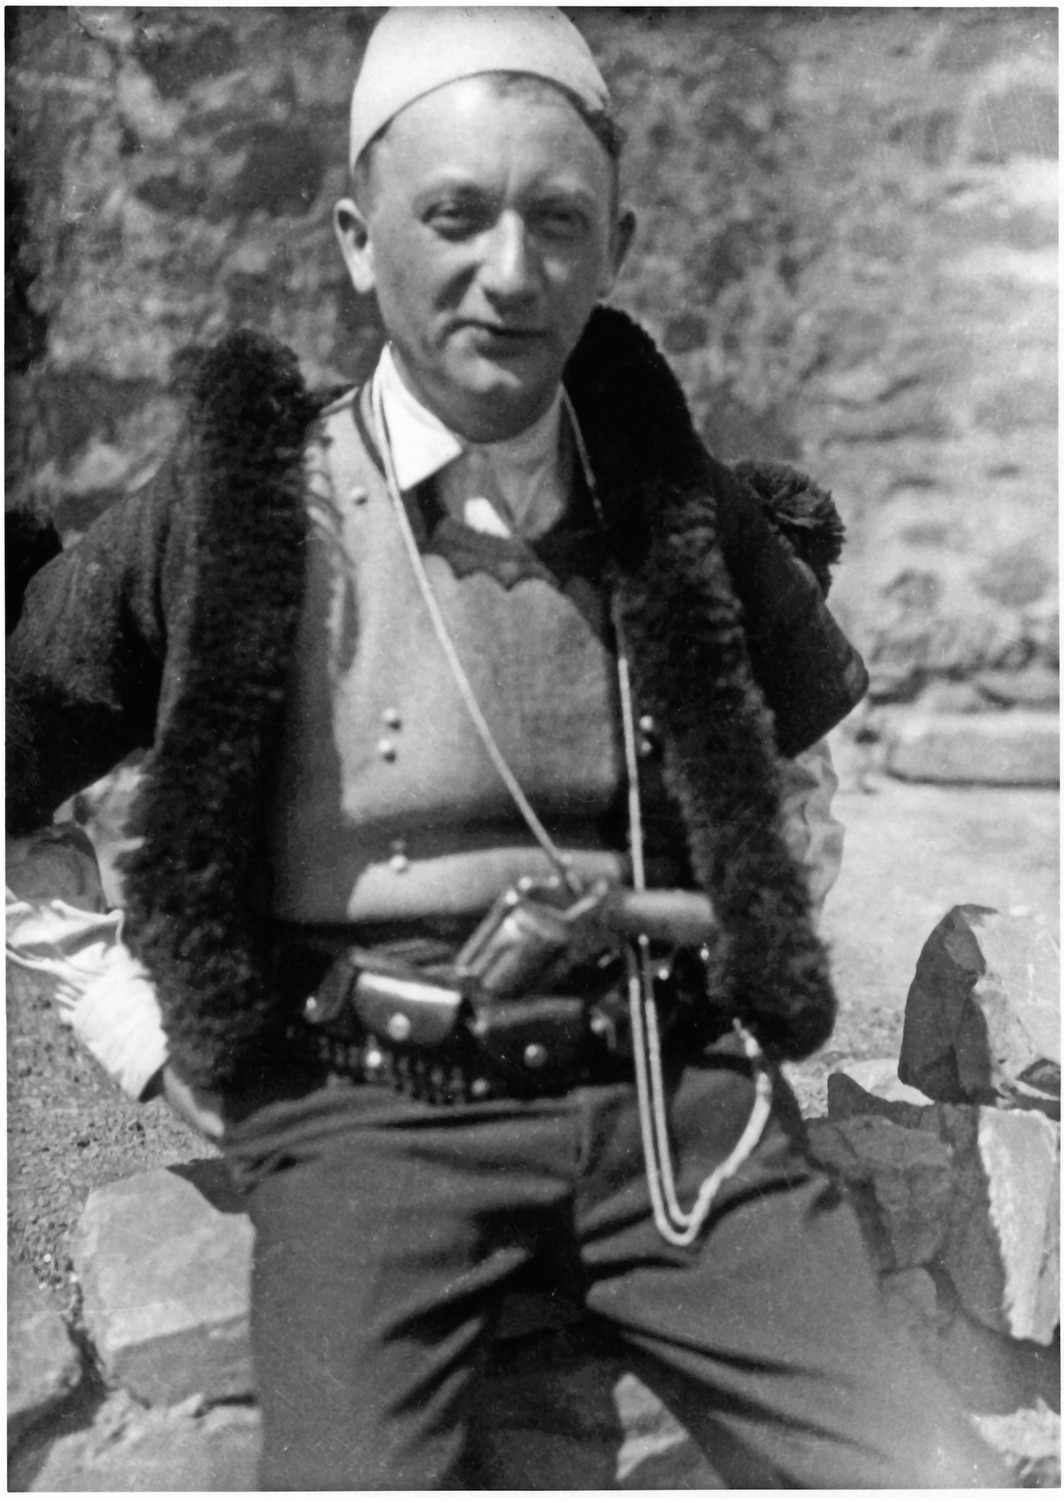 Joseph Roth dressed in traditional Albanian clothing, 1927.